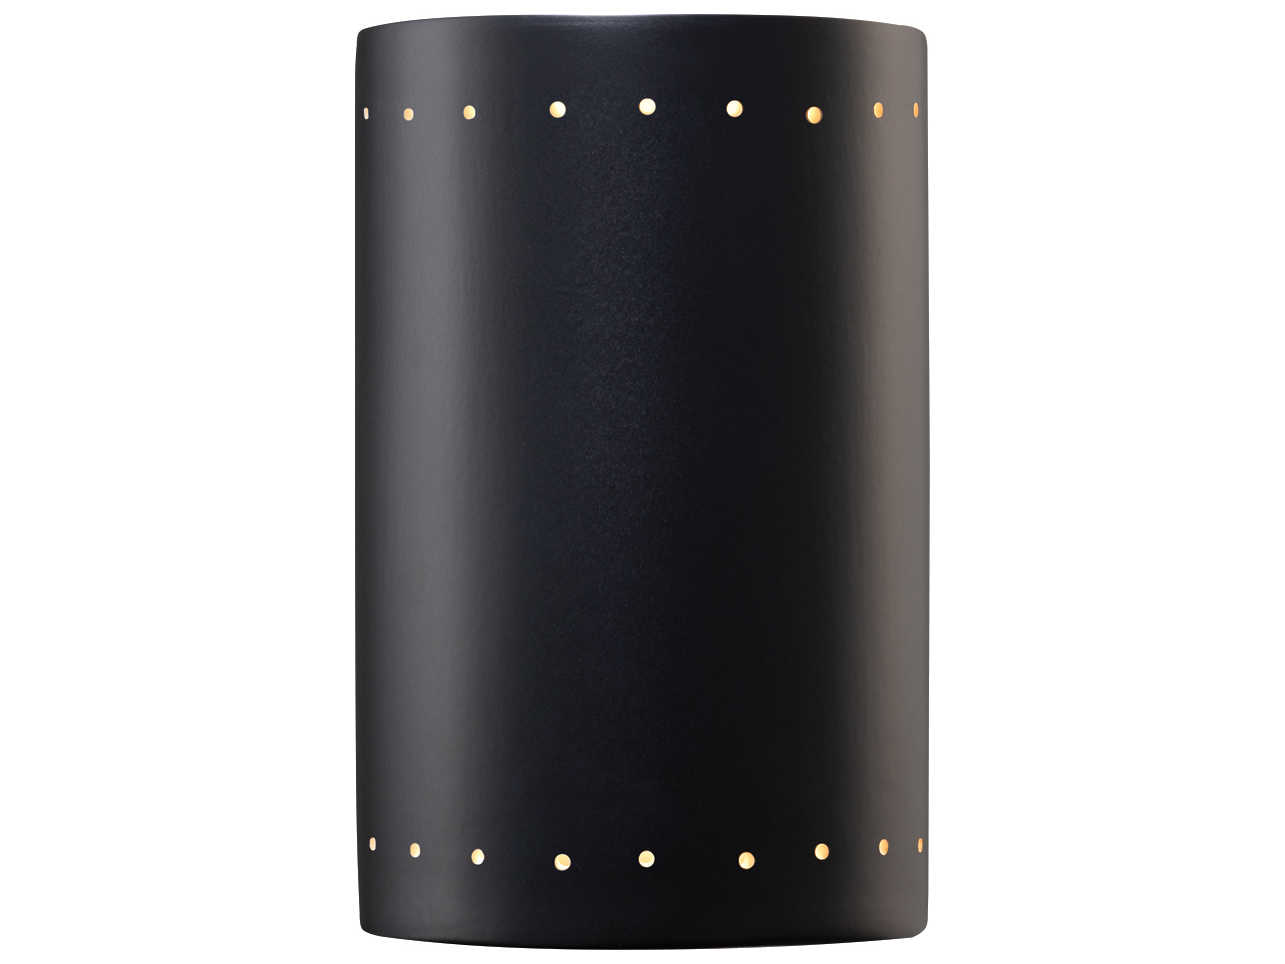 Exterior Ceramic Wall Sconces : Justice Design Group Ambiance Cylinder Large Ceramic Outdoor Wall Sconce With Perfs CER-1295W